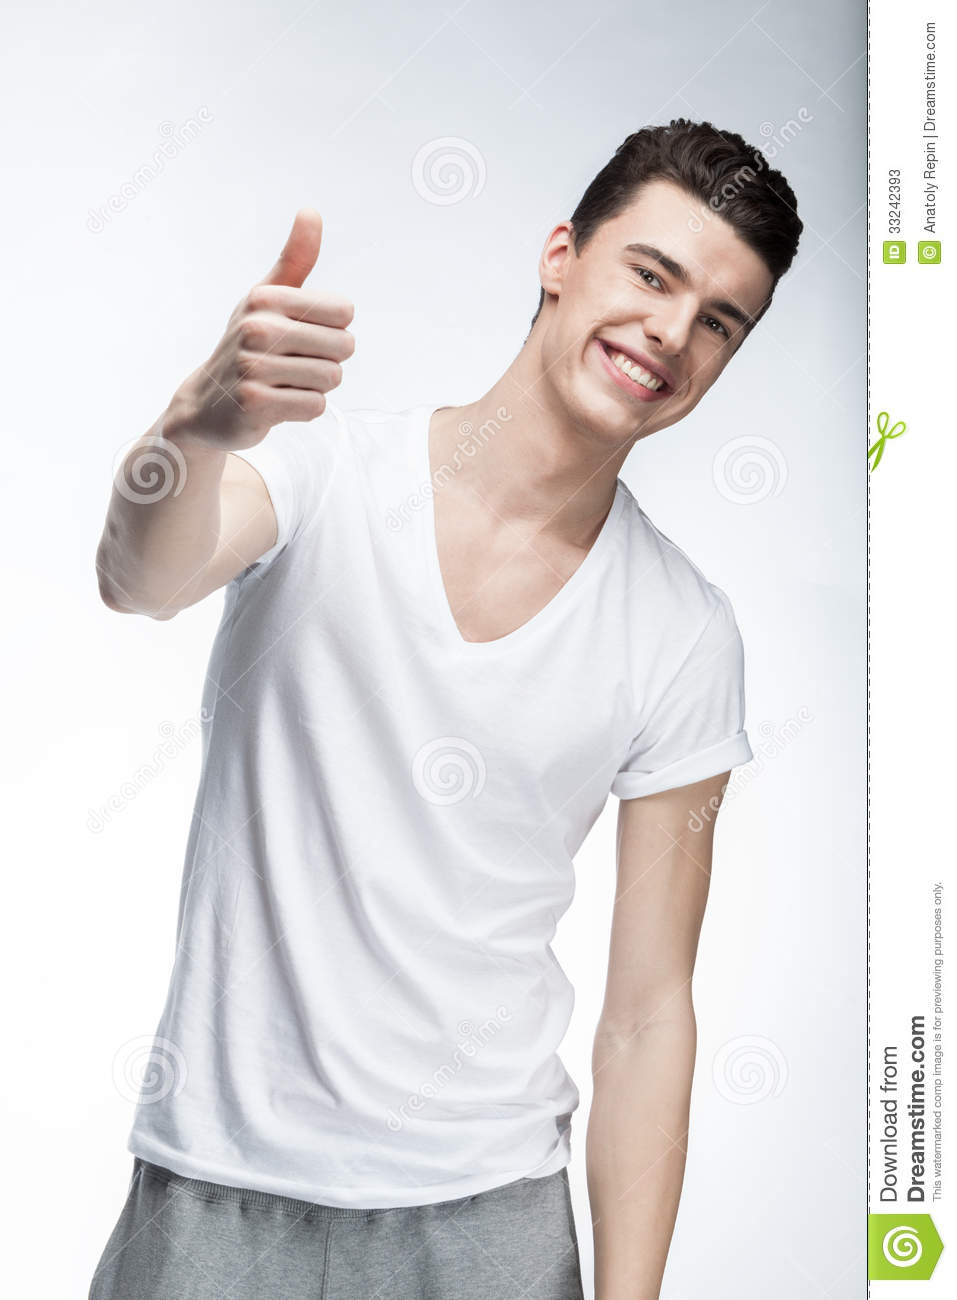 Man Wearing White T-shirt On Light Background Stock Photos - Image ...